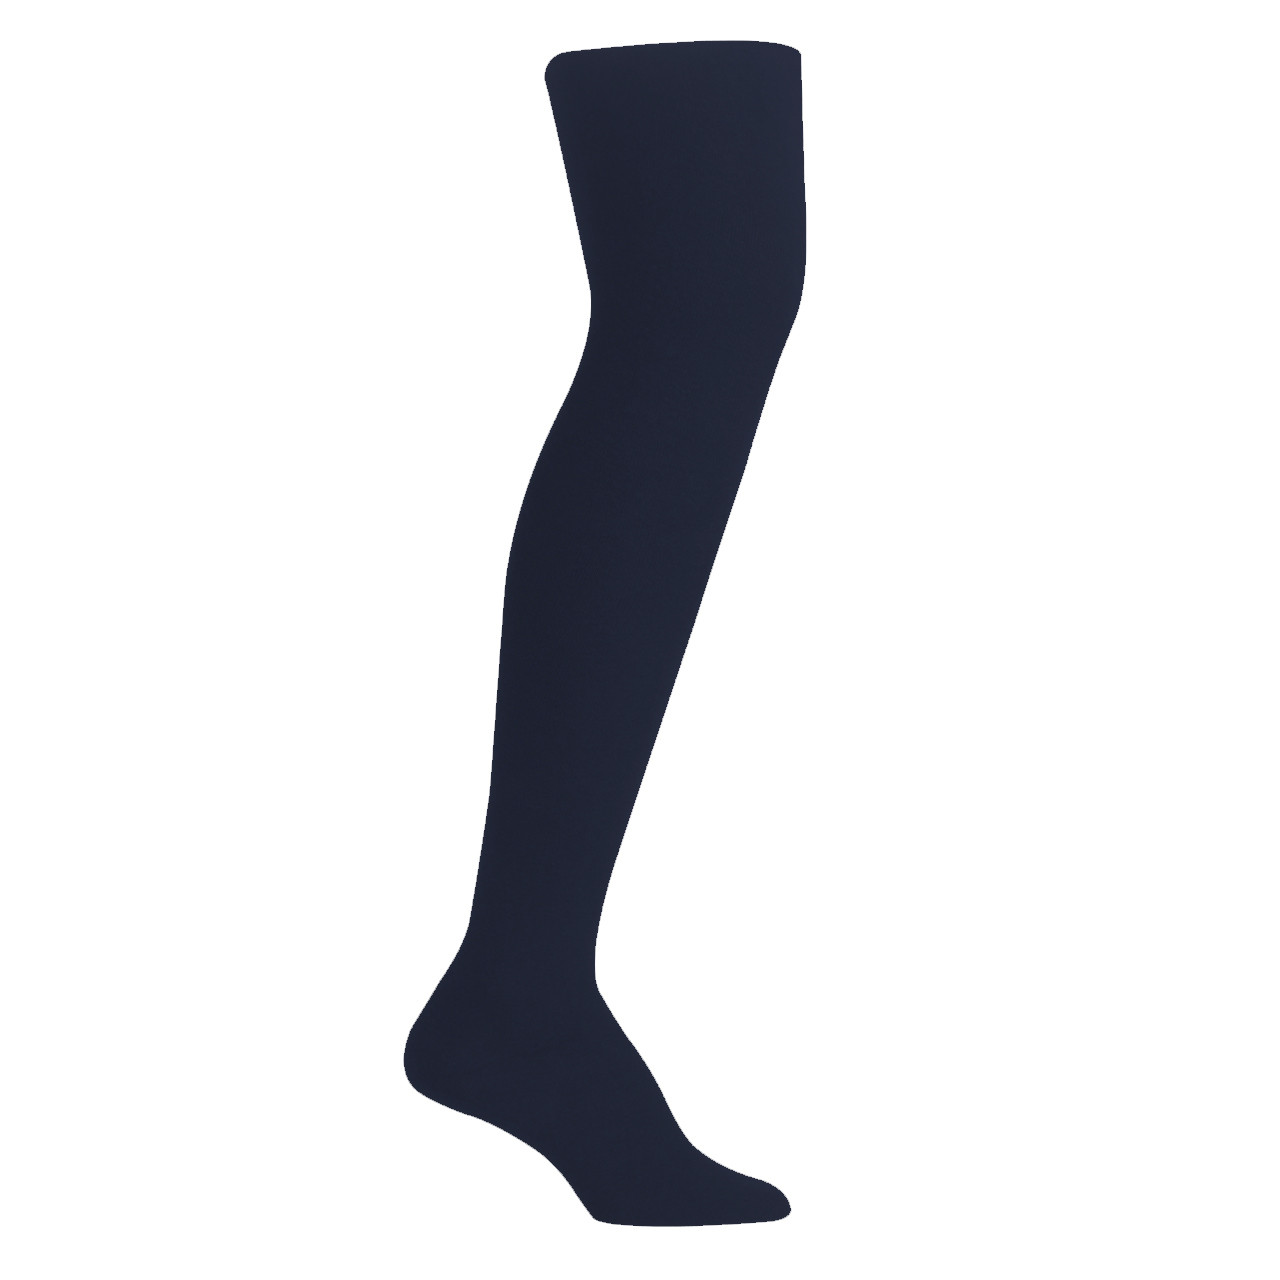 Girls Opaque Tights 70 Denier Colours Black Grey Green Brown Navy for ages 9-11 or 11-13